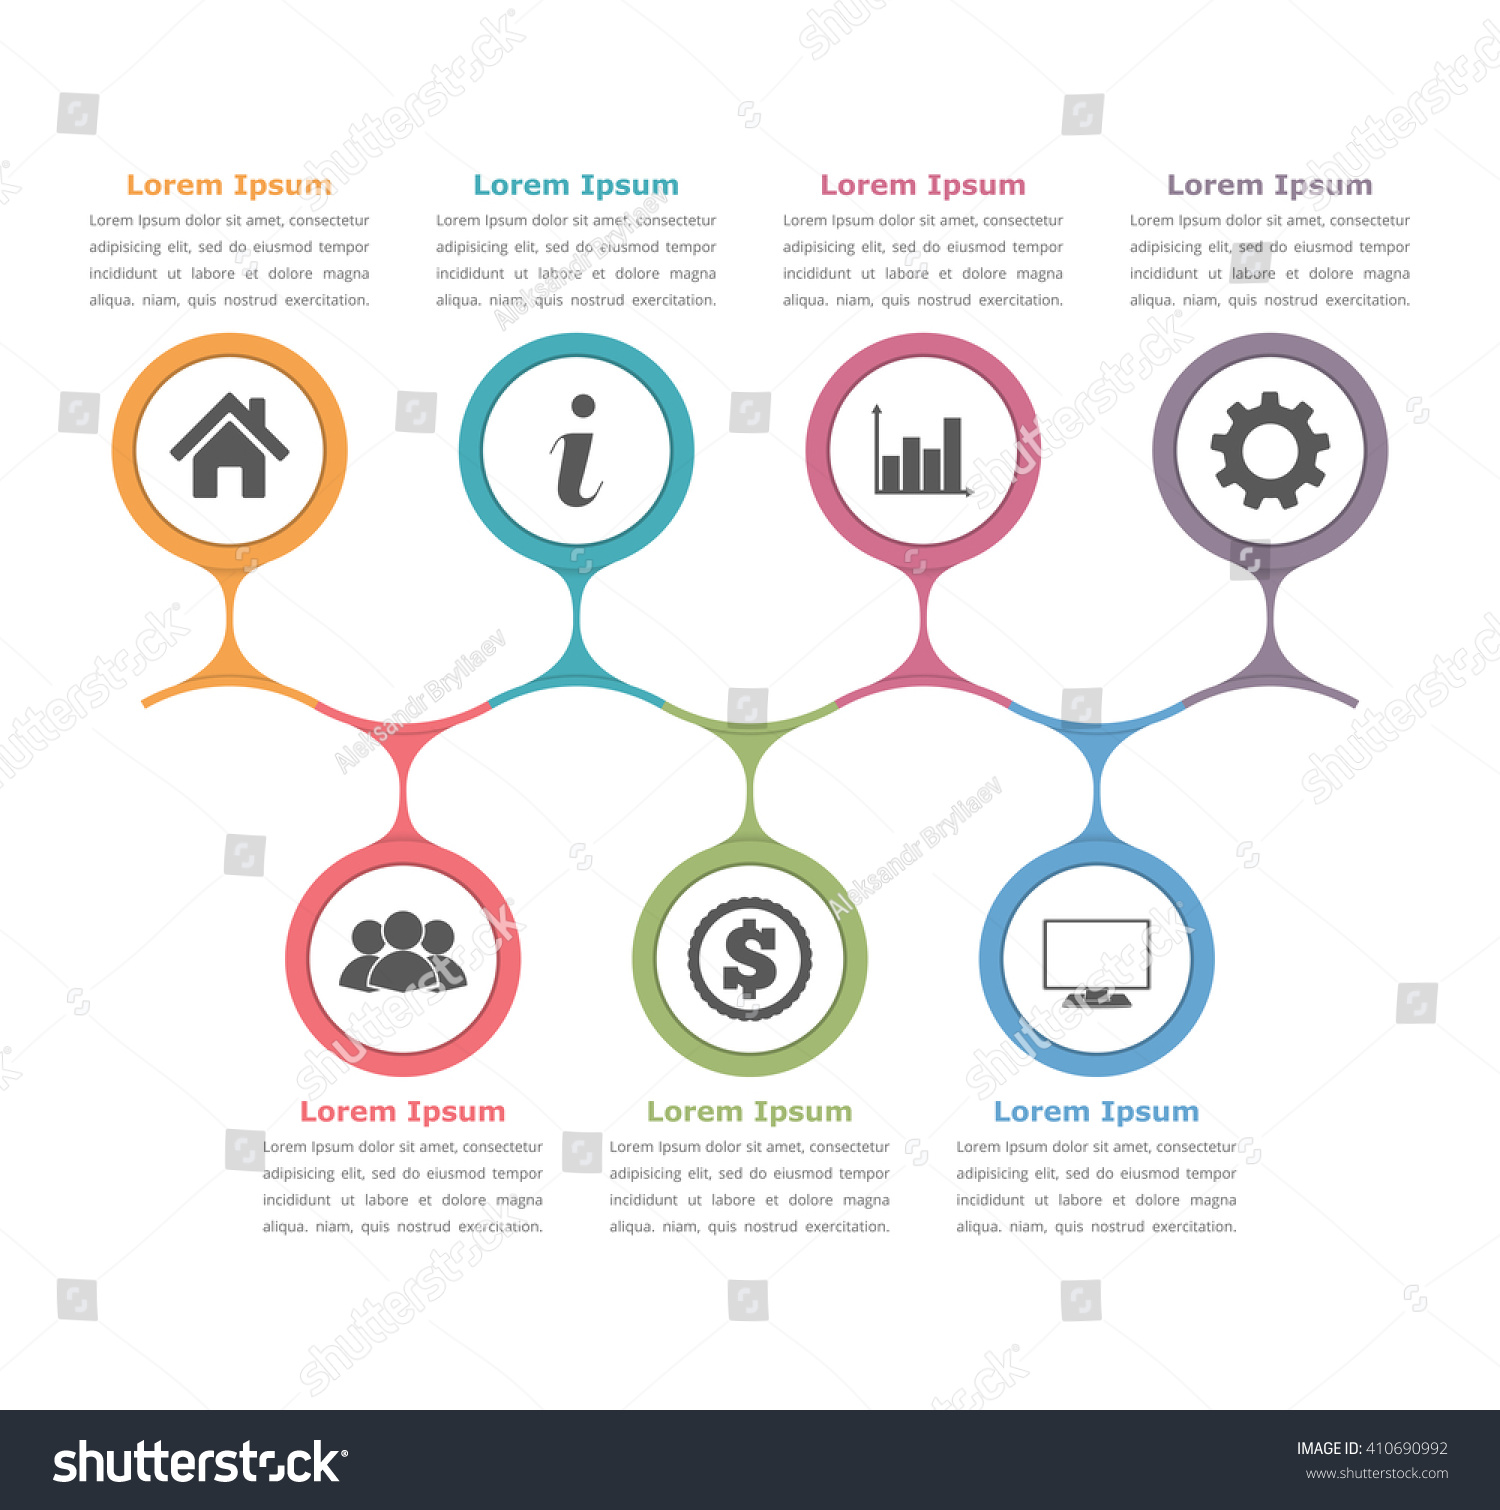 Flow chart template with icons and text, process diagram infographics,  business infographics, vector